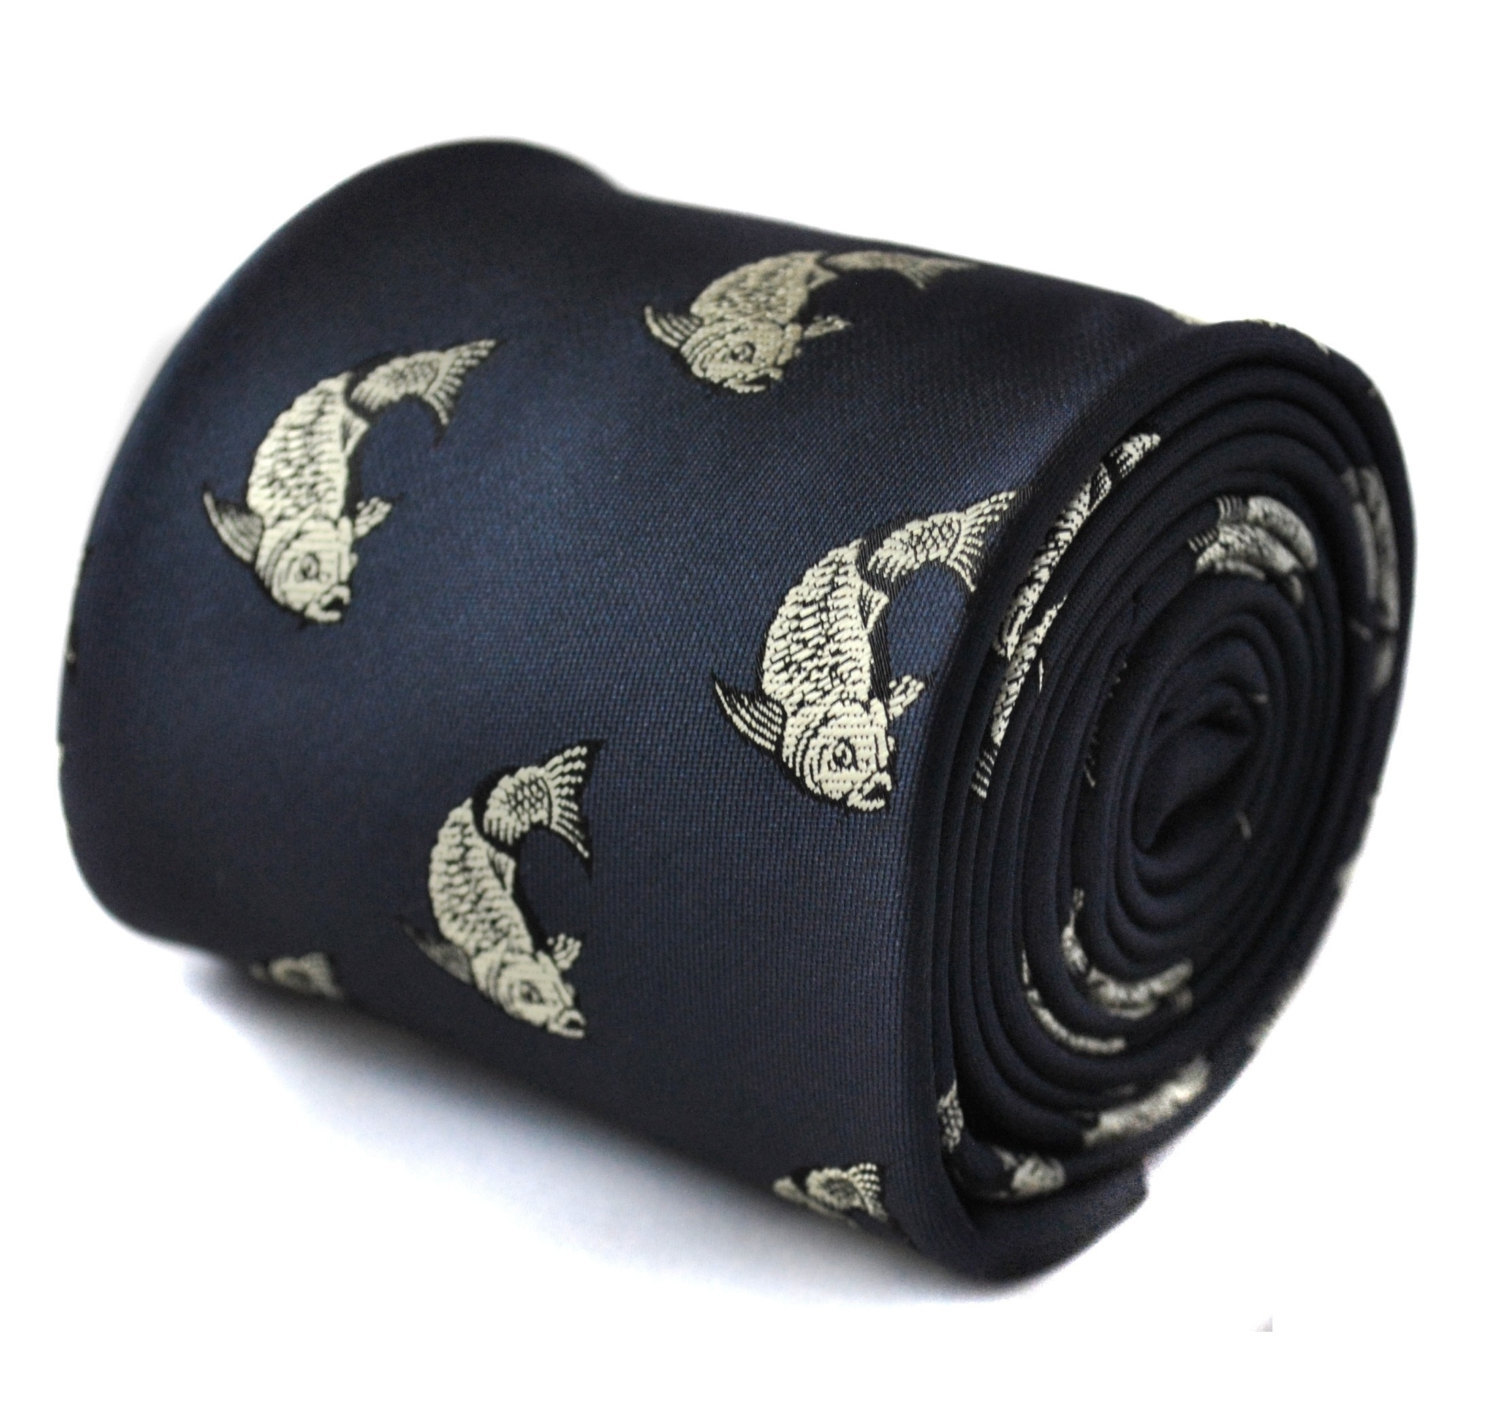 navy tie with koi carp tattoo embroidered design with signature floral design to